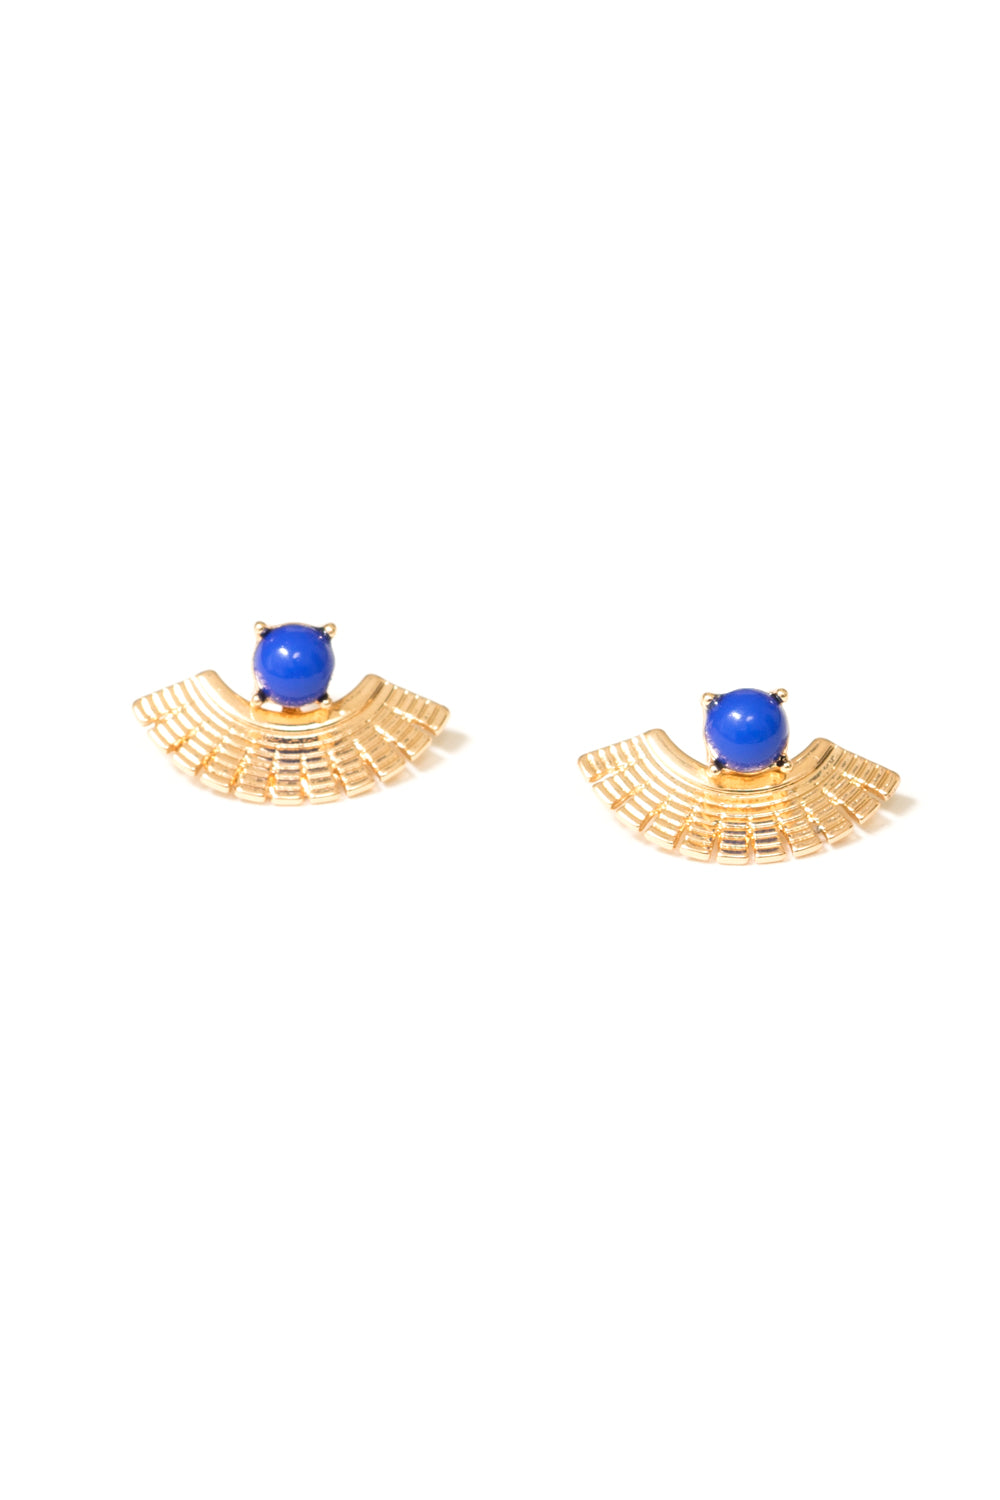 blue ear jacket earrings